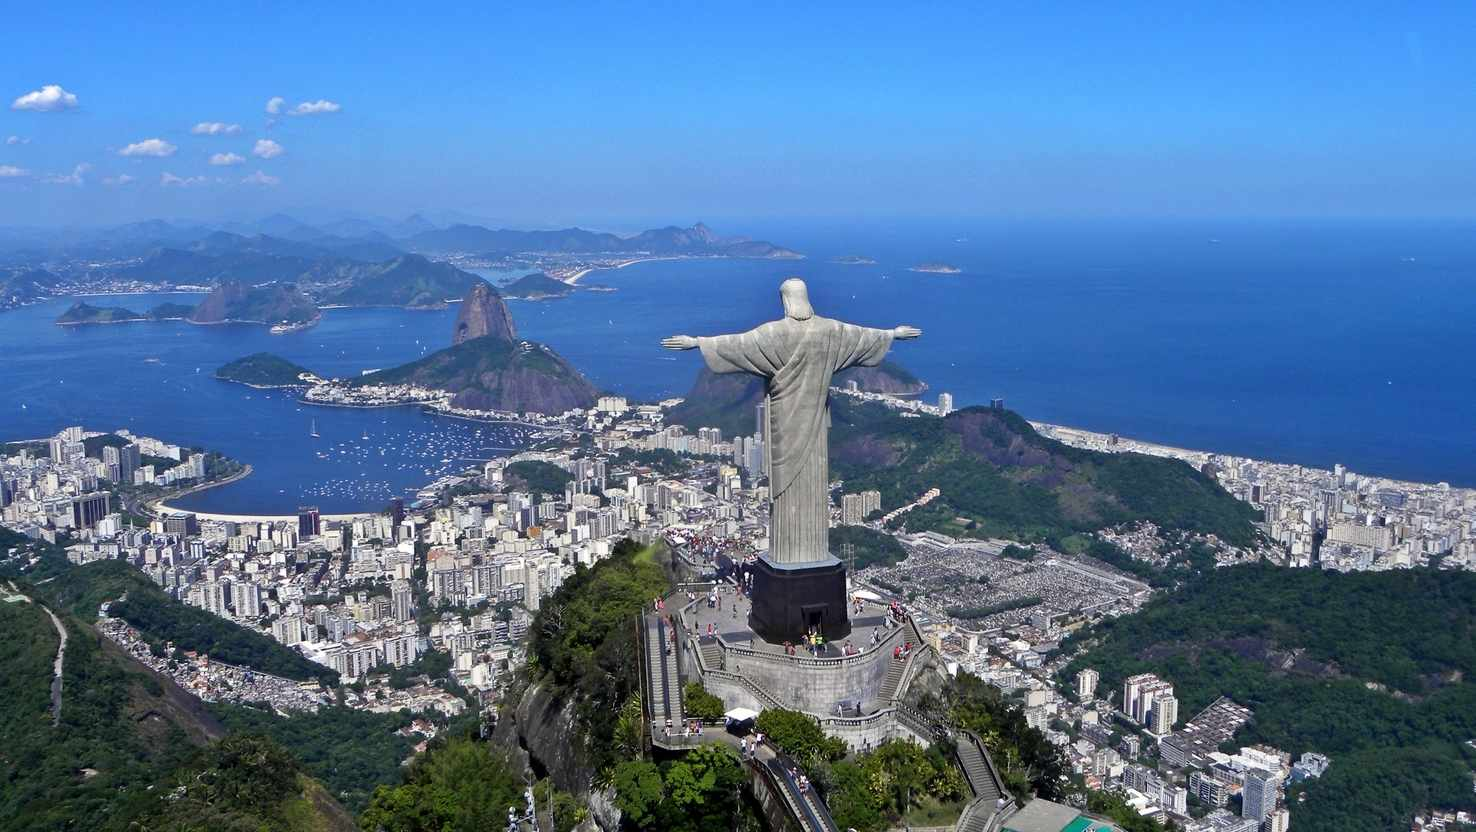 Large christ on corcovado mountain